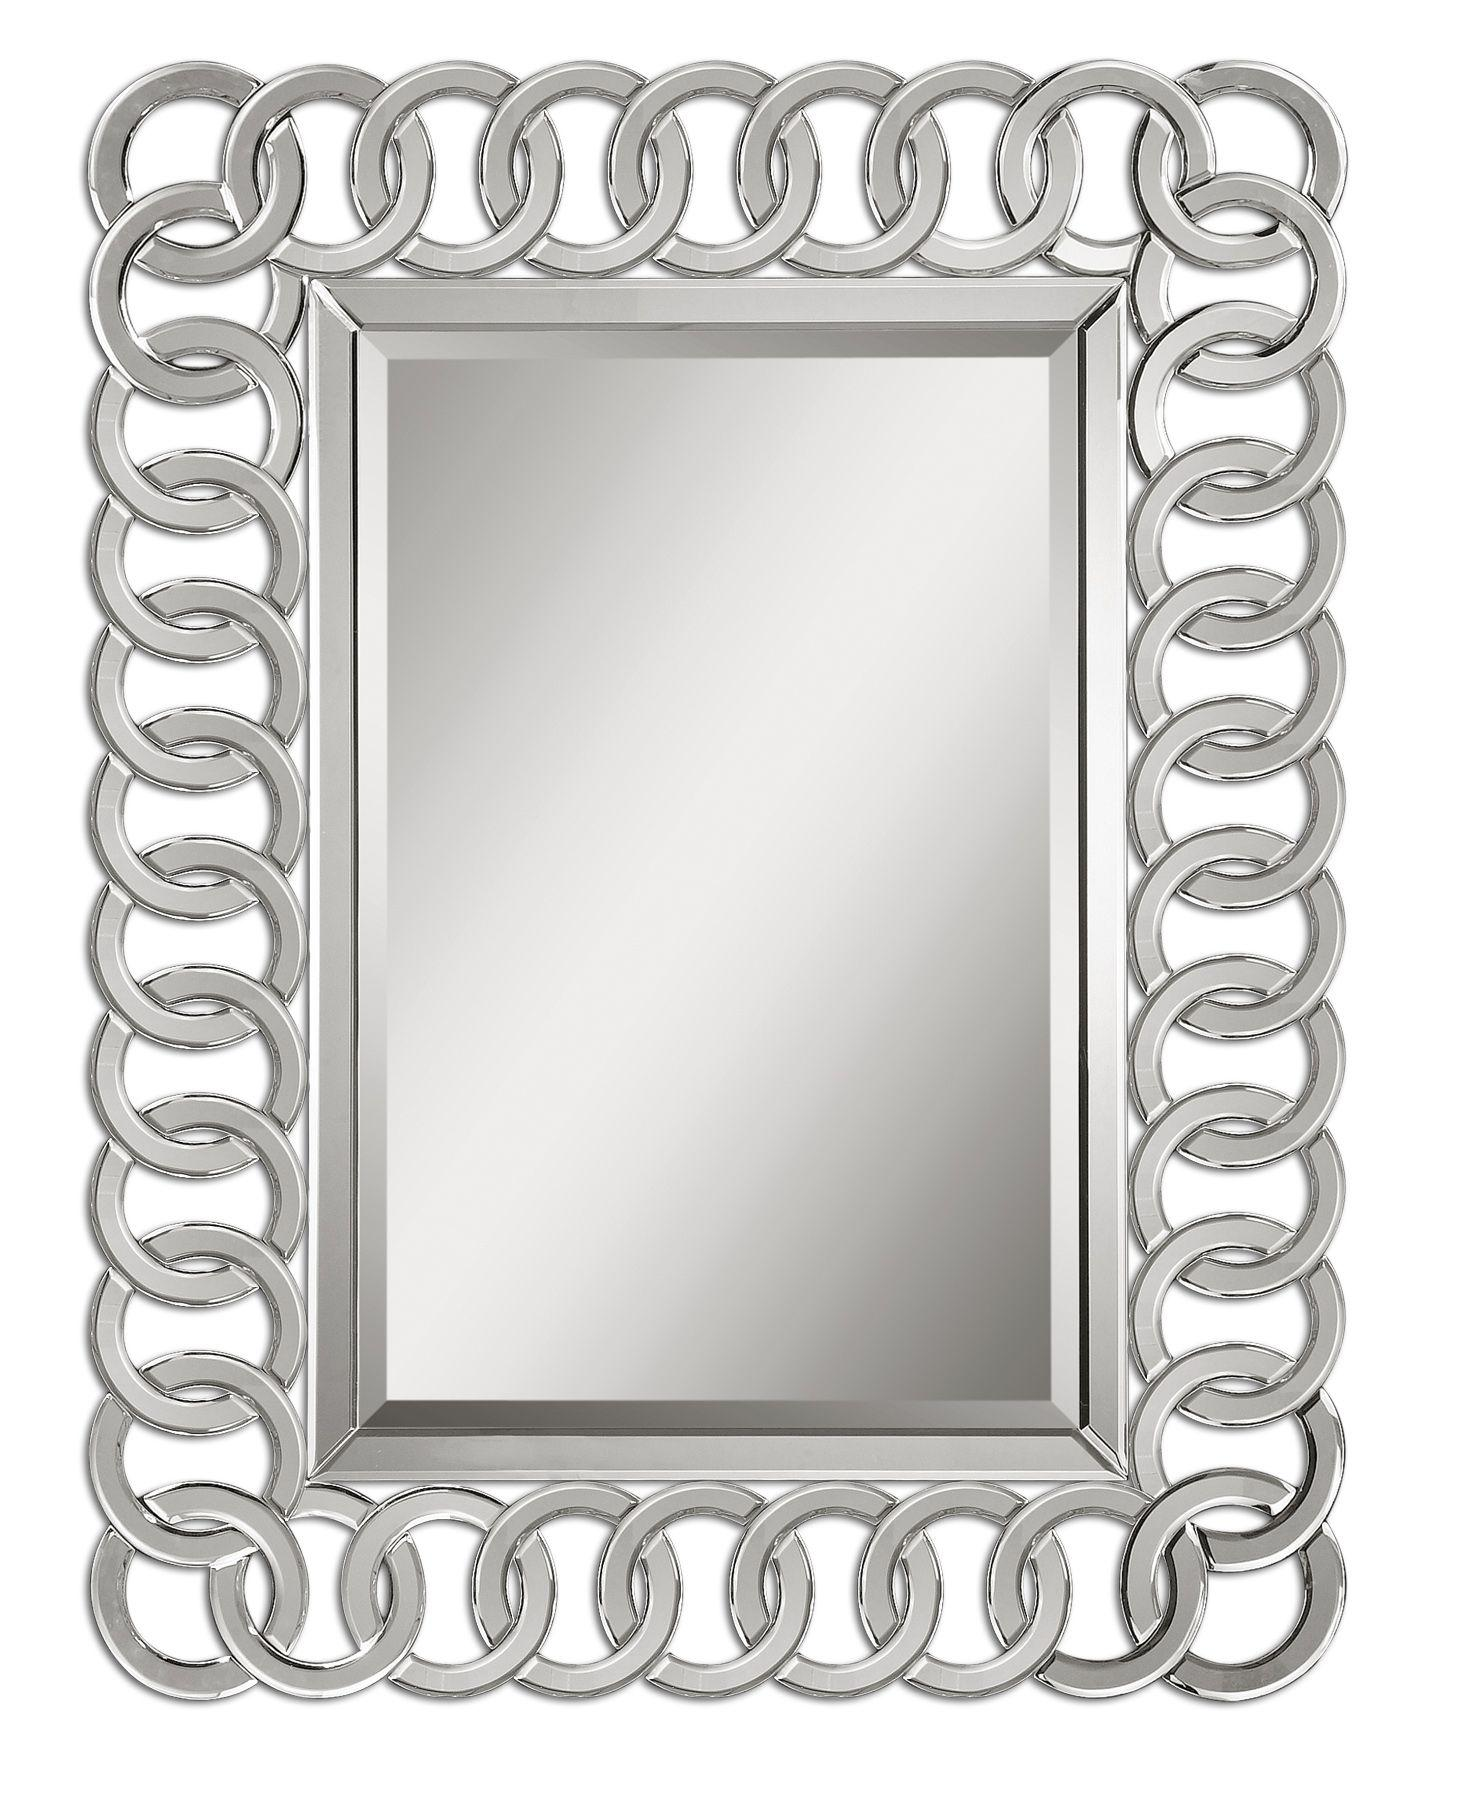 Uttermost Mirrors Caddoa Mirror - Item Number: 08102